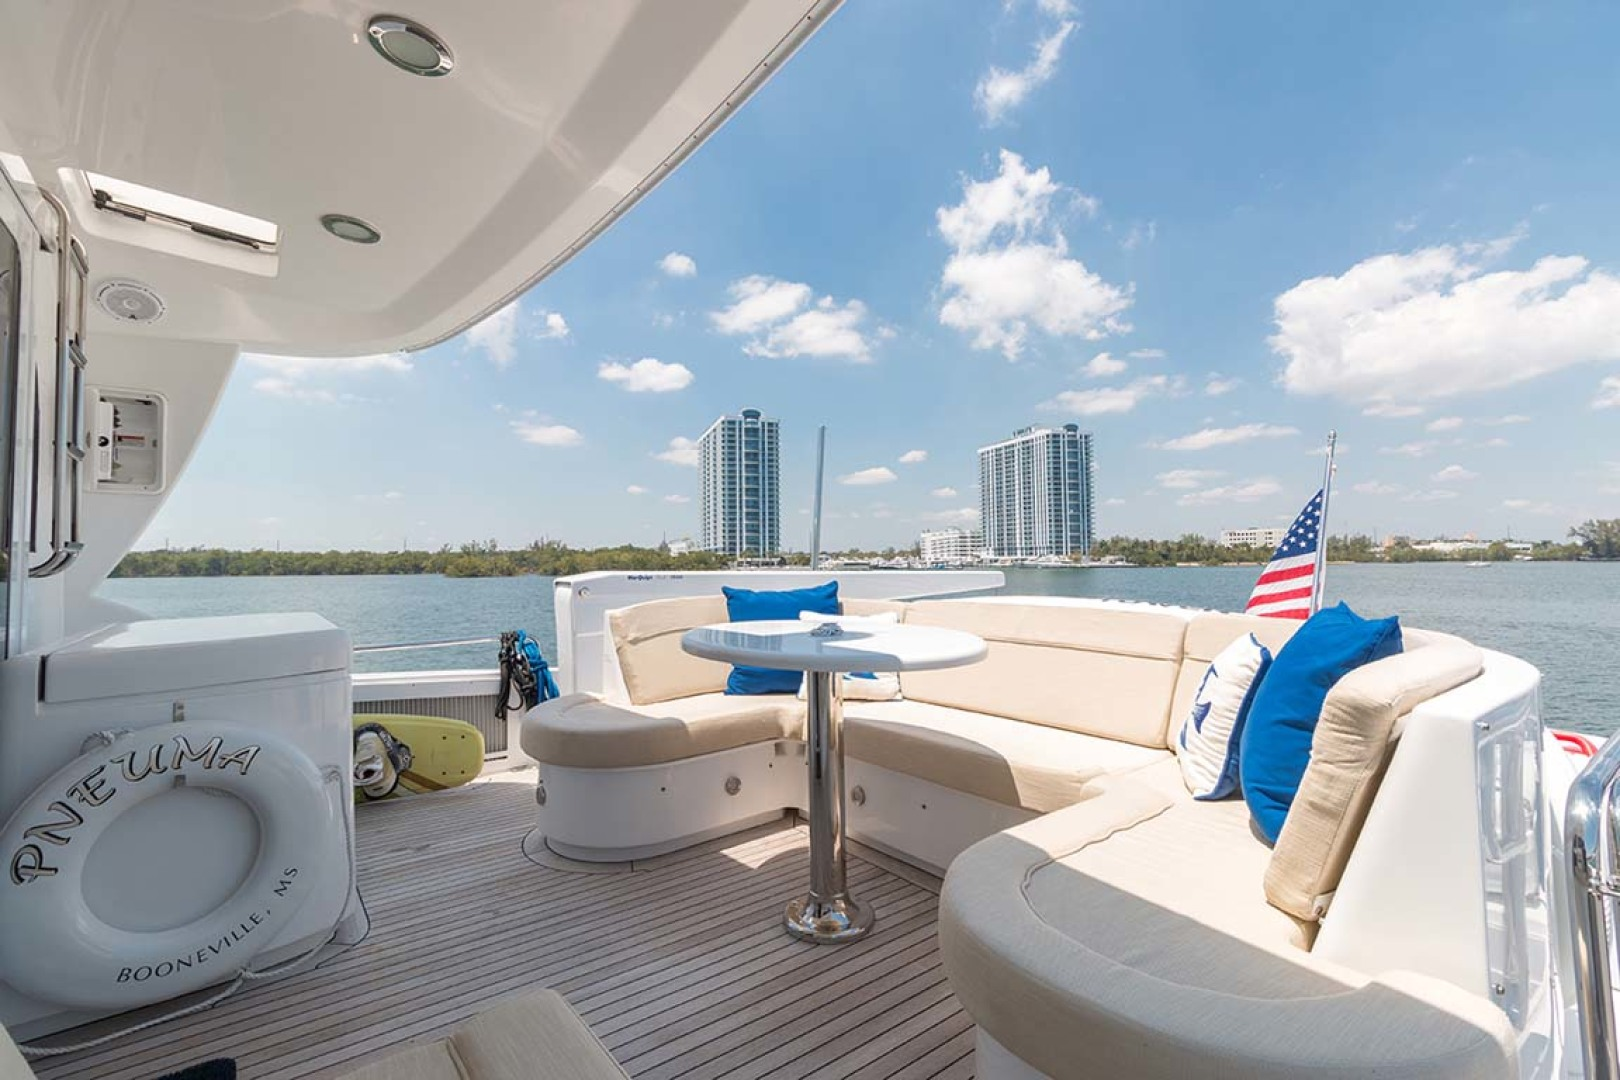 Hatteras-80 Motor Yacht 2007-Pneuma Ocean Reef-Florida-United States-Boat Deck U-Shaped Lounge with Table-1092665 | Thumbnail